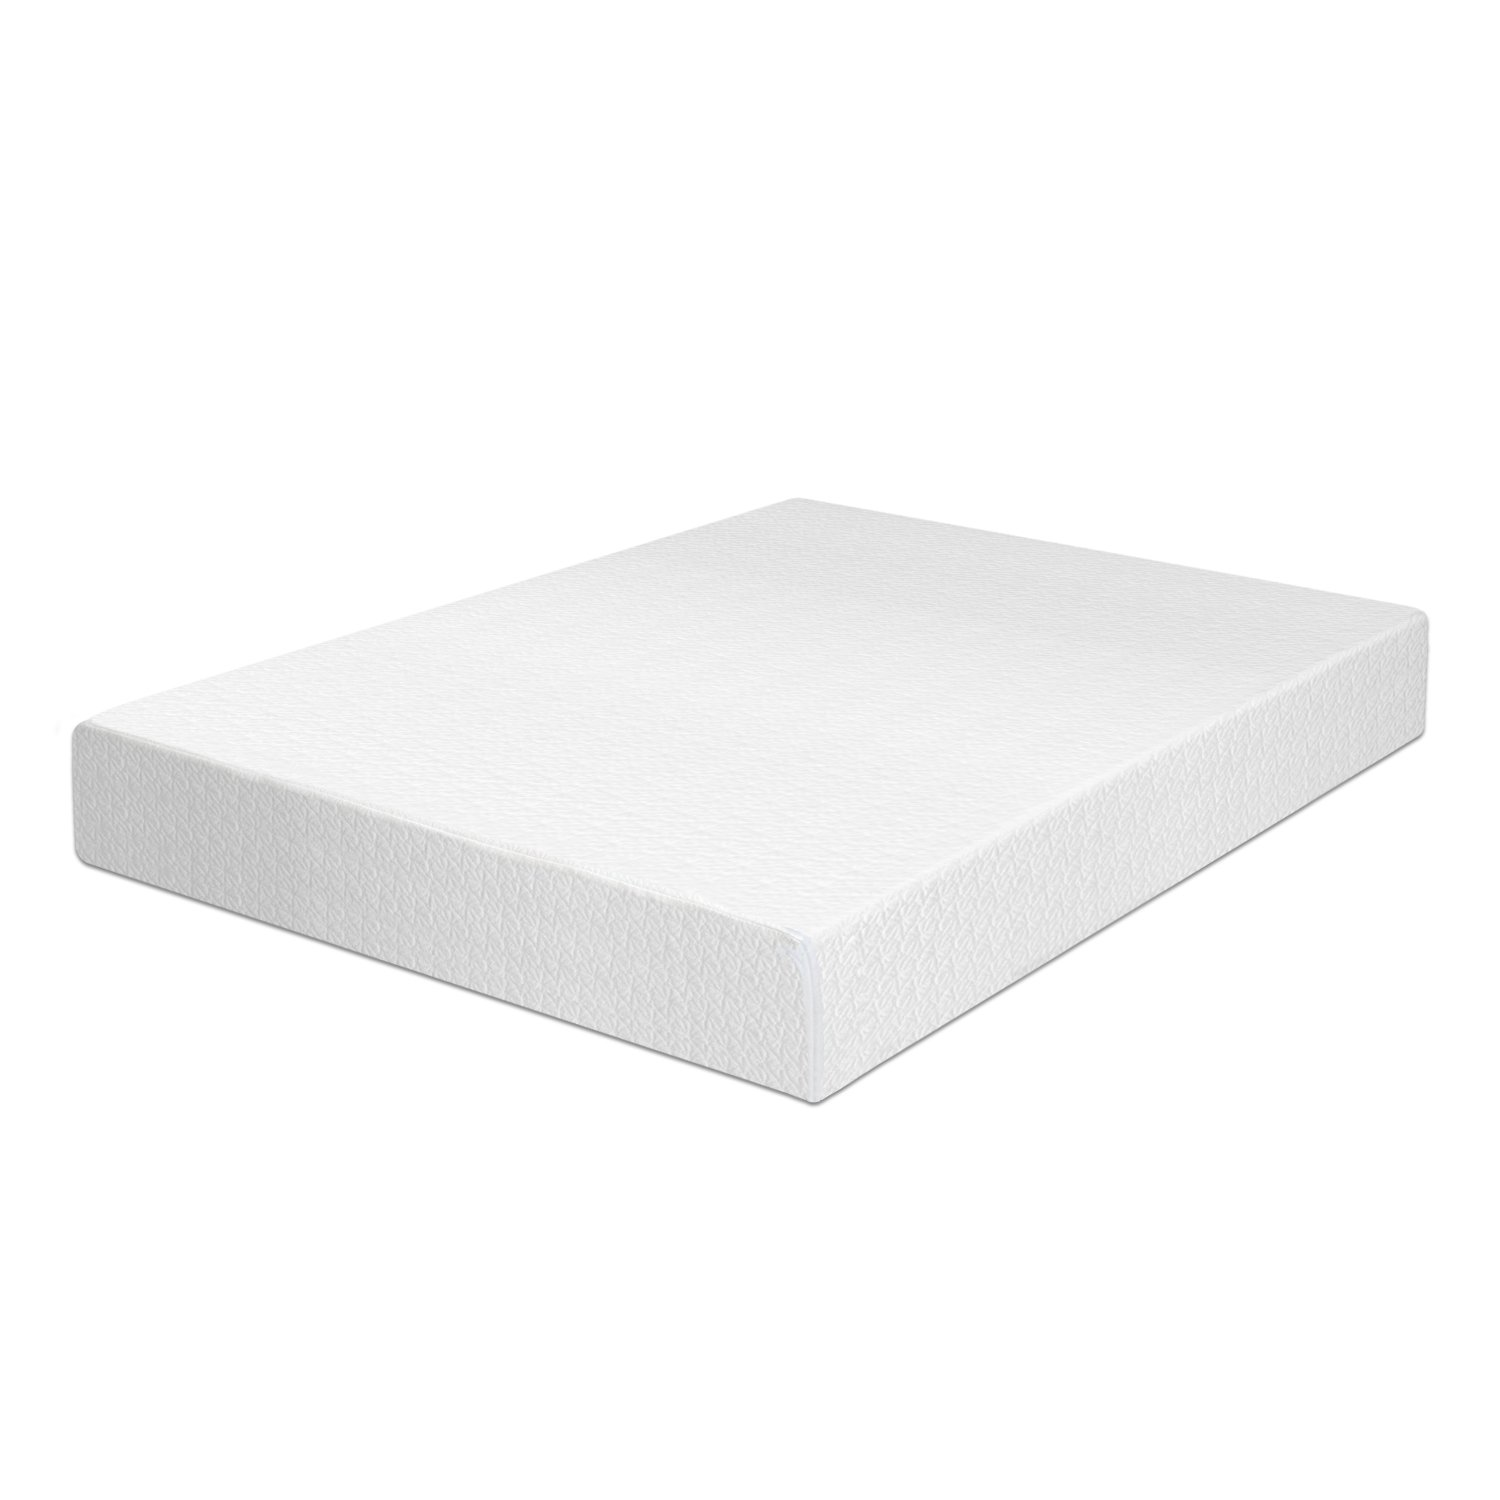 Best Price Mattress 10 Inch Memory Foam Mattress Ireviewable